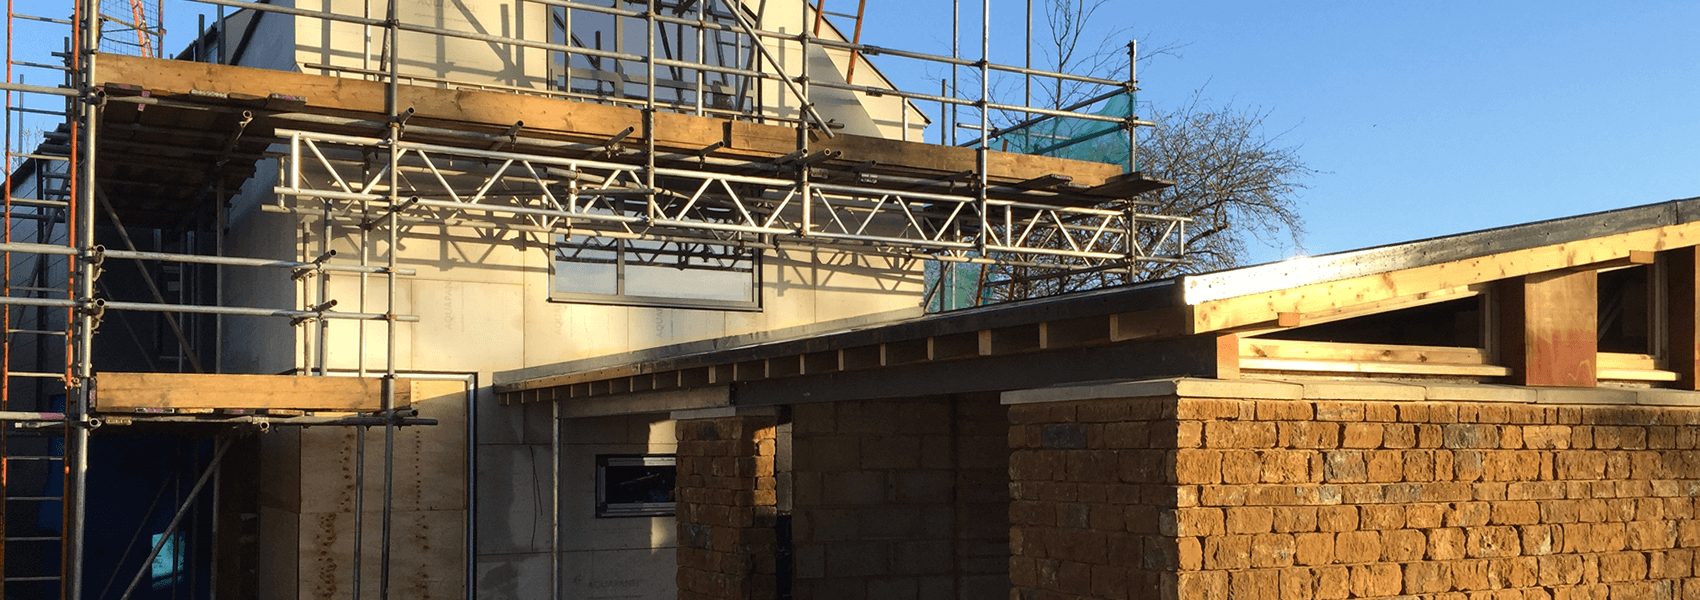 GD Building Company - Builders in Banbury, Oxfordshire